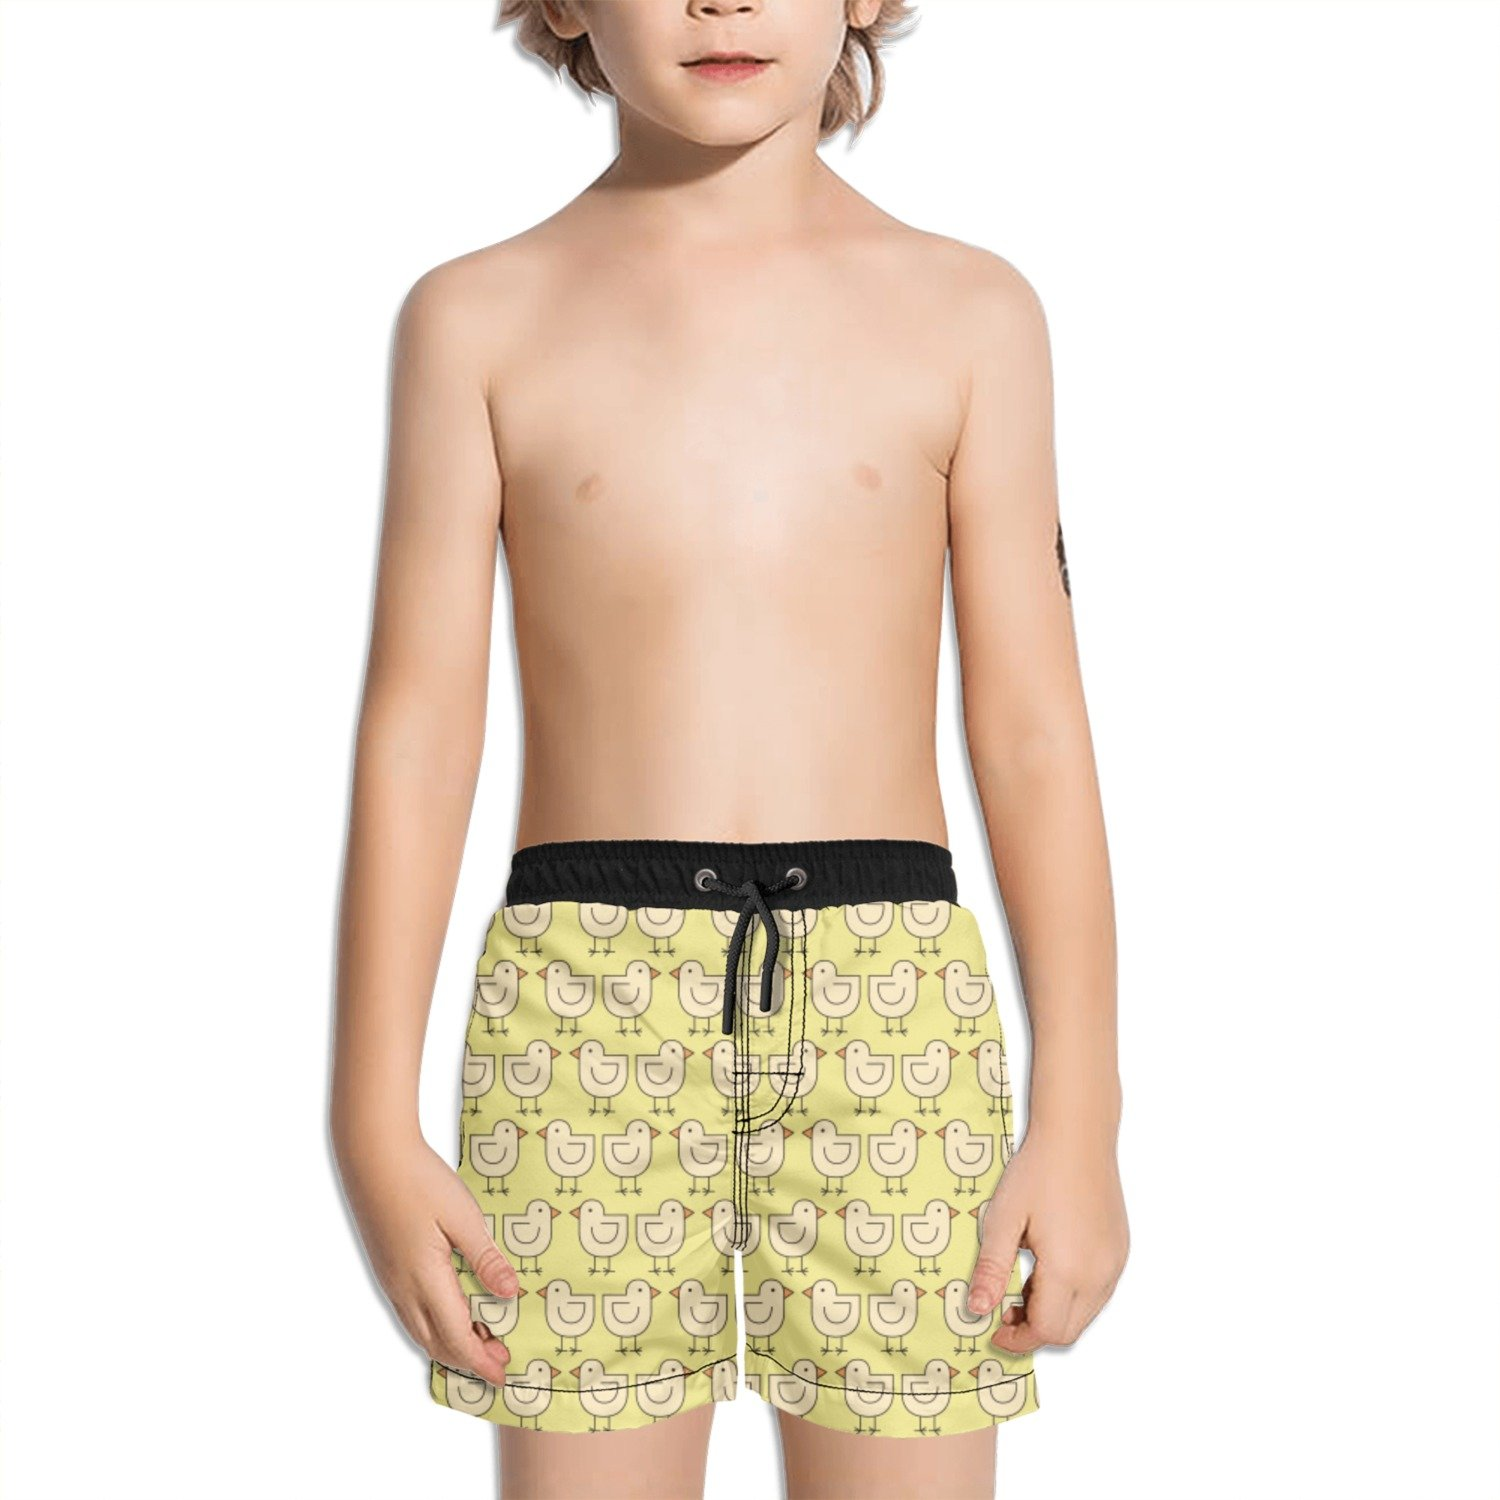 Cluck Shorts Trum Namii Boys Quick Dry Swim Trunks in The Kitchen Cluck